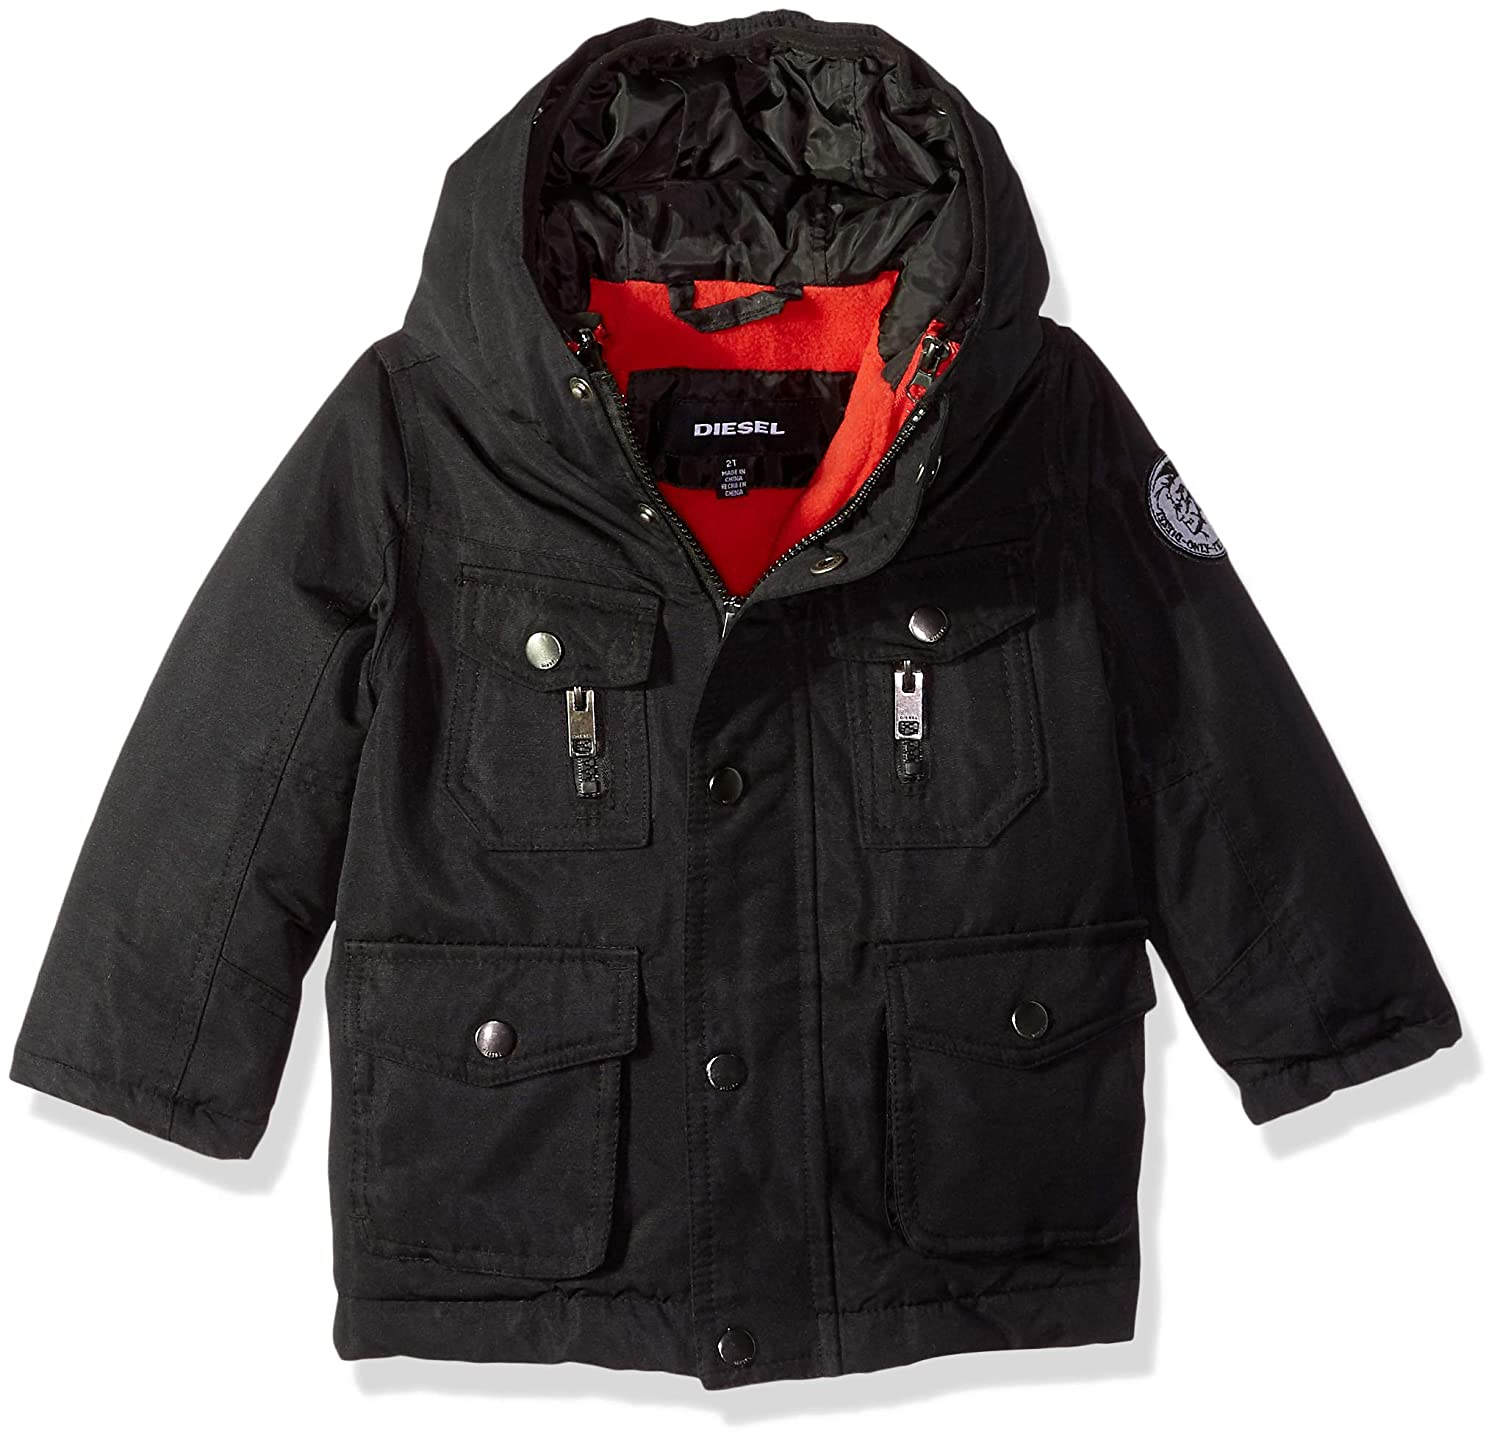 Diesel OUTERWEAR ボーイズ